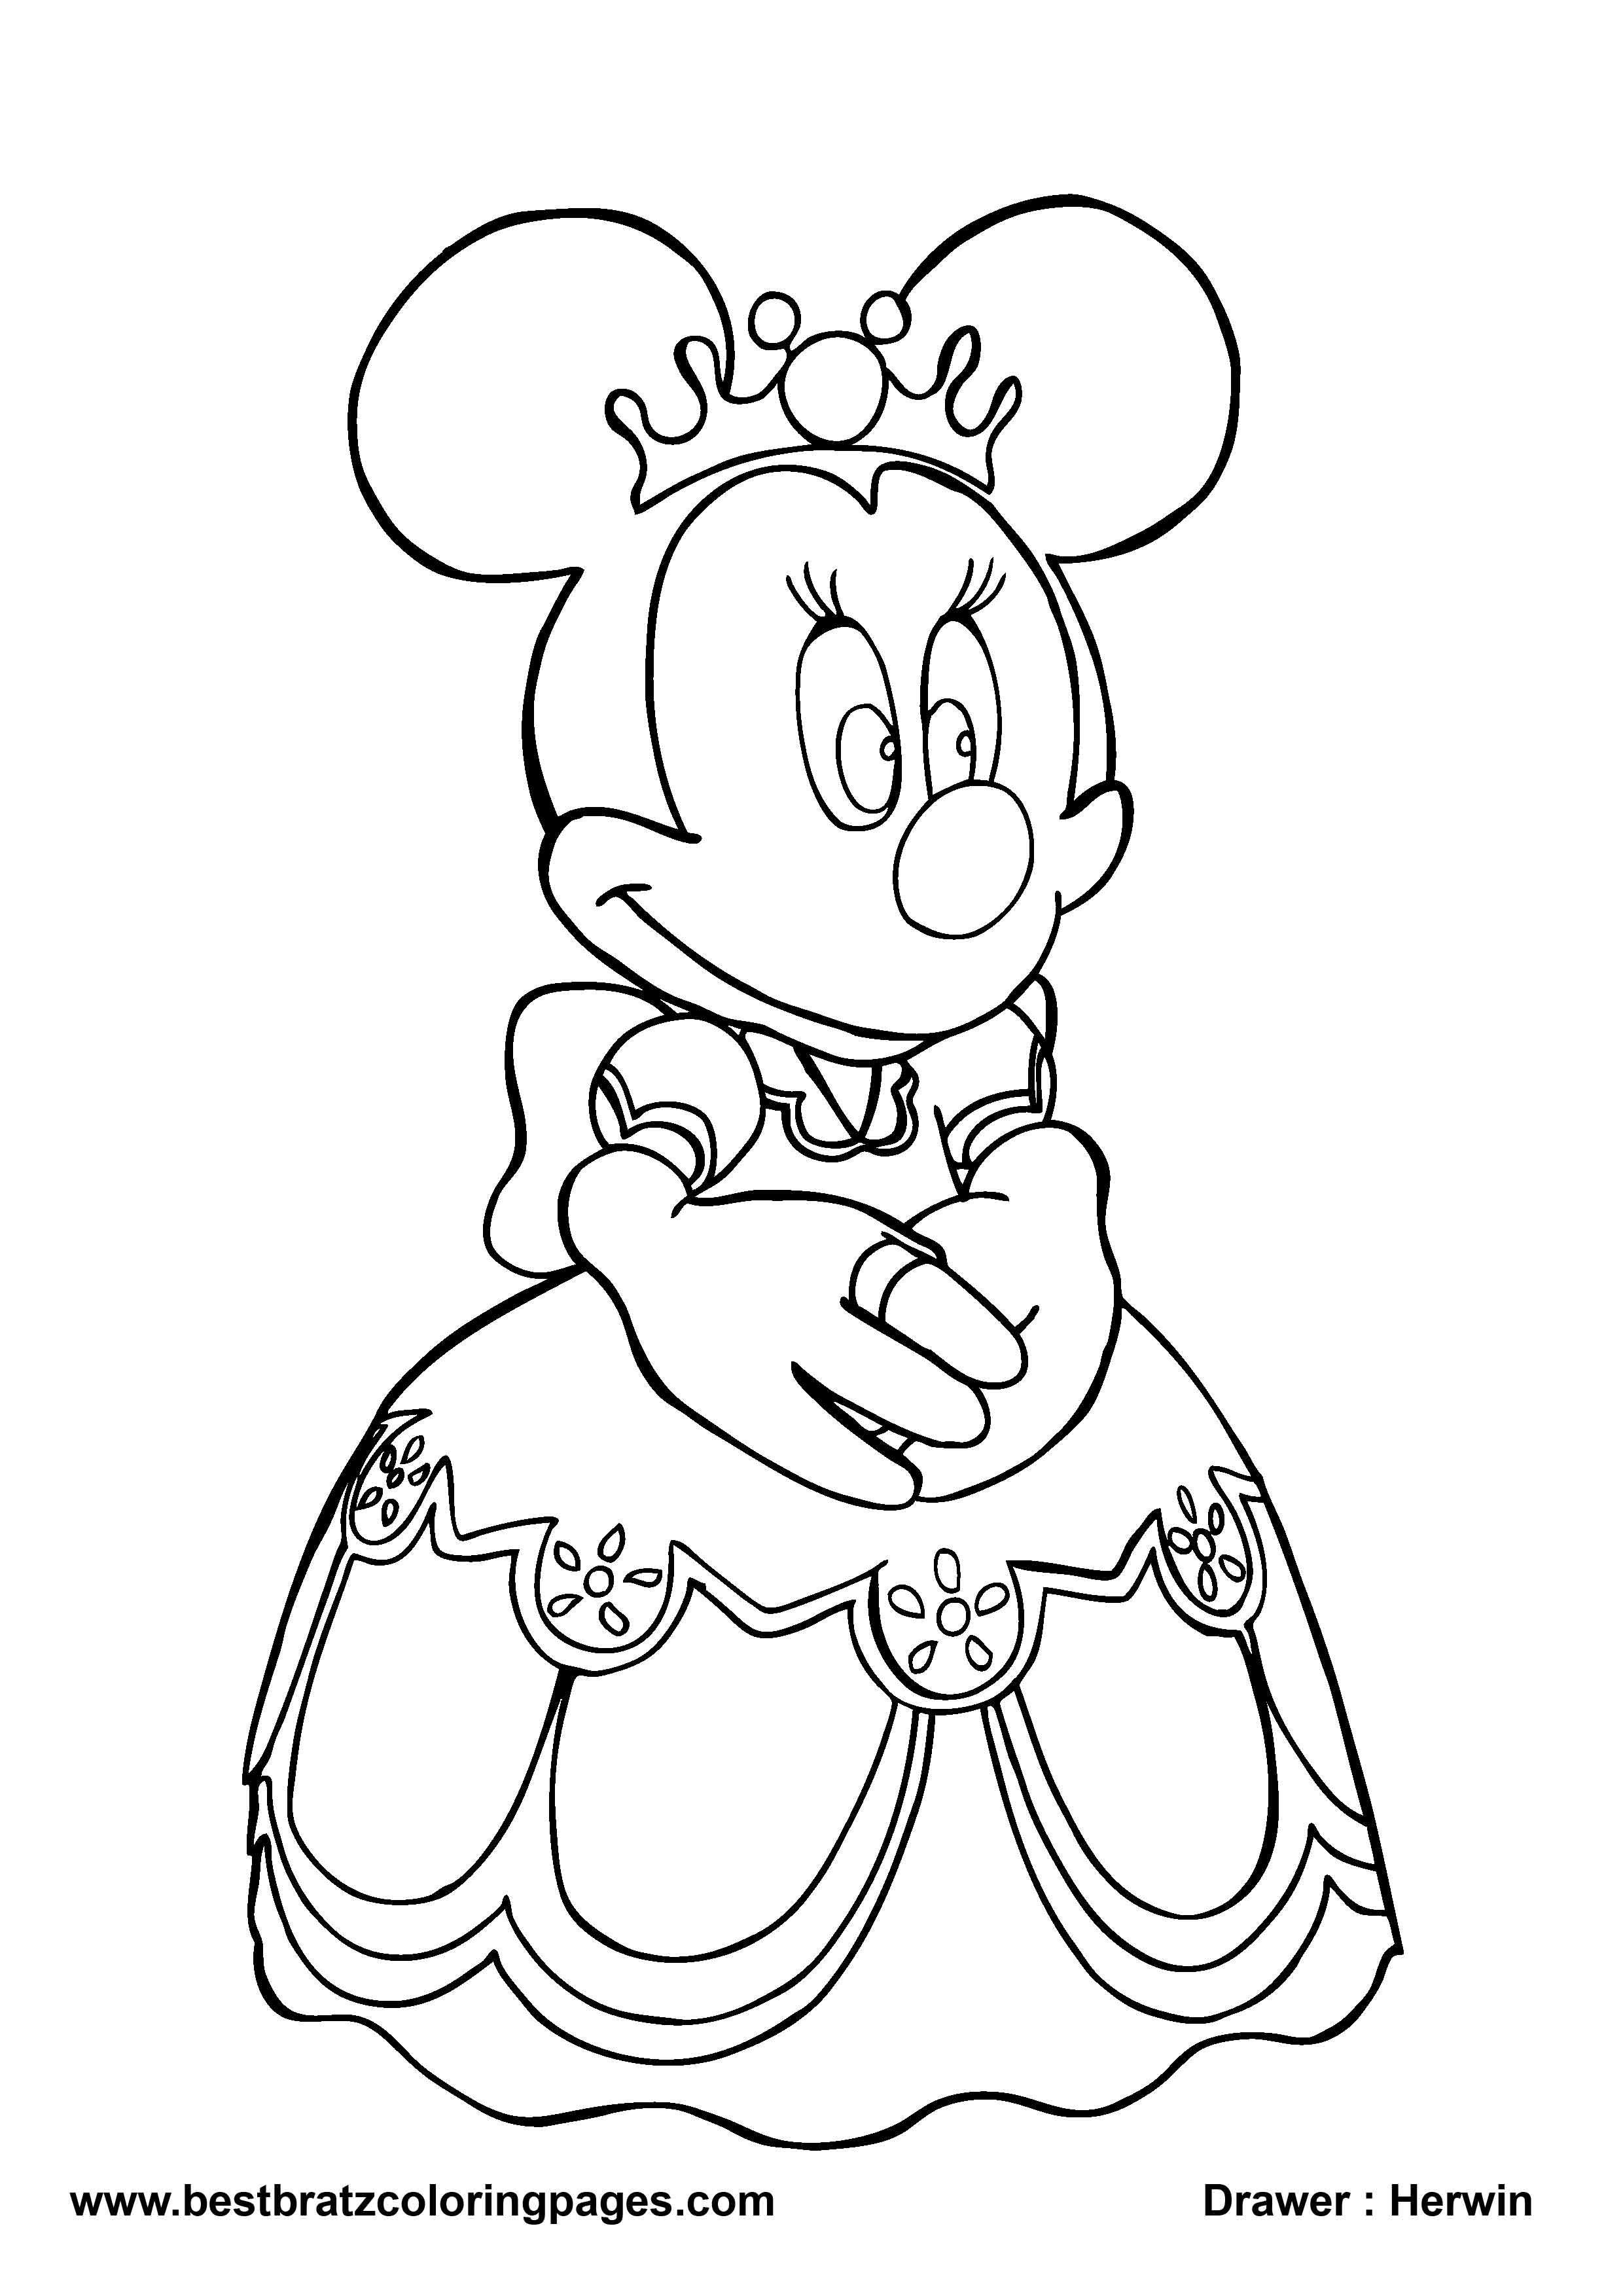 Minnie Mouse Drawing At Getdrawings